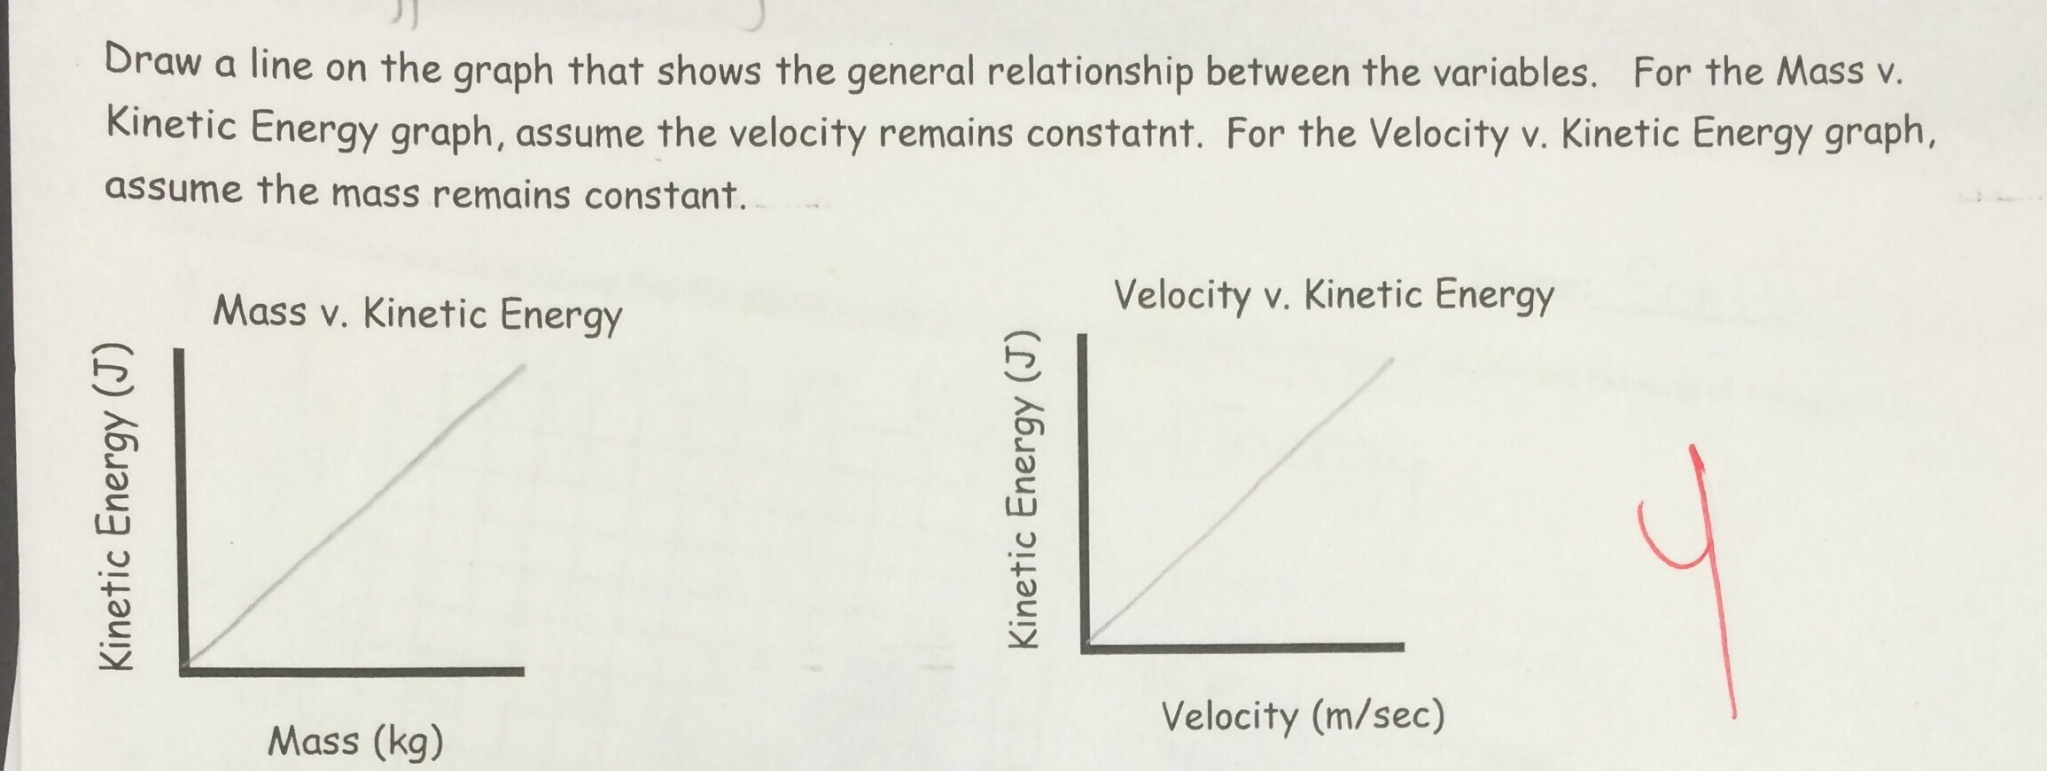 worksheet Potential Vs Kinetic Energy Worksheet lesson kinetic and potential energy lab rotation betterlesson as mass velocity increase the will well the